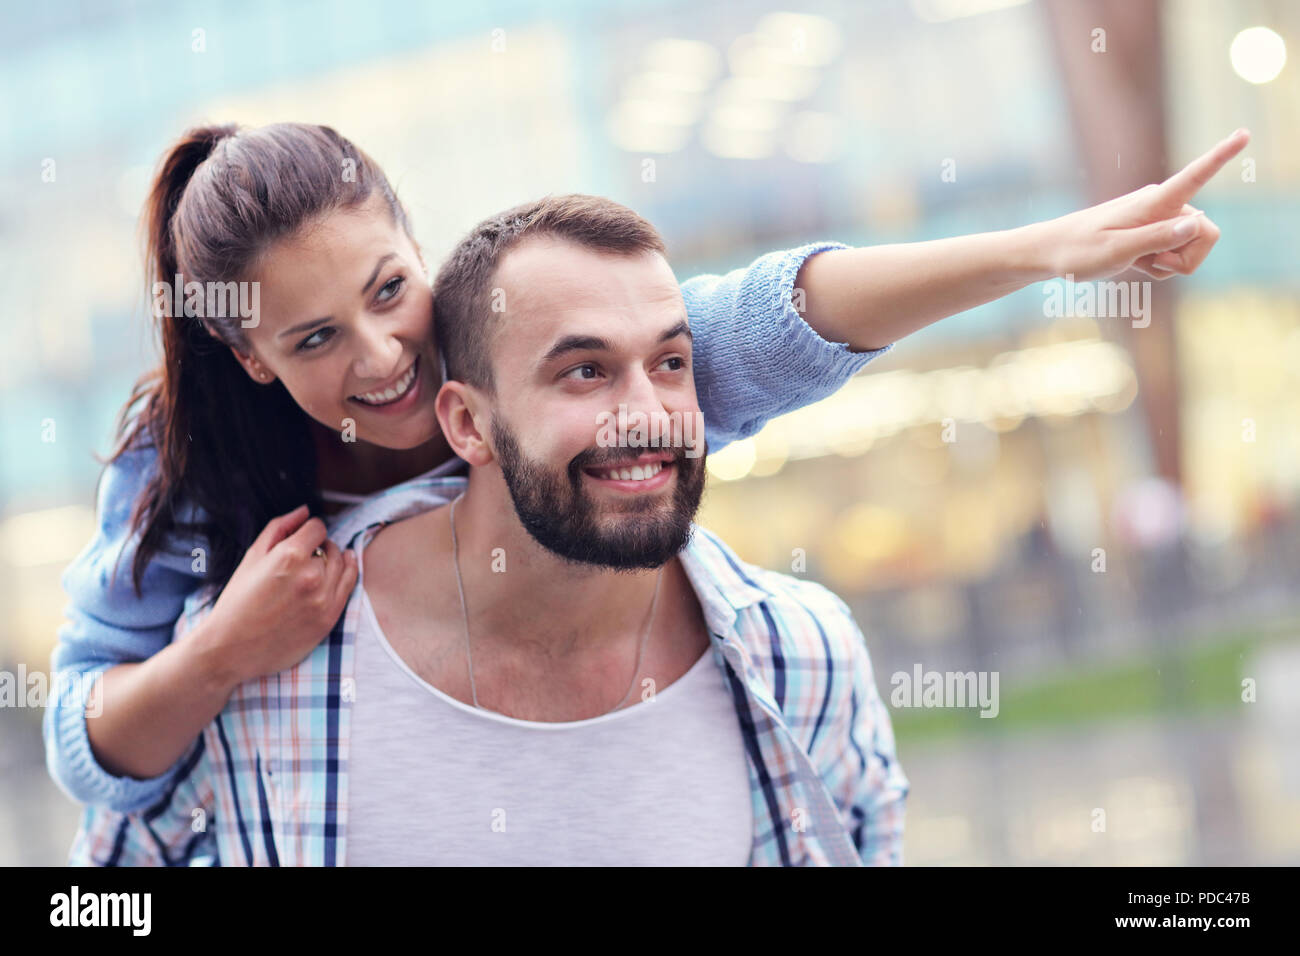 Happy couple dating in the city - Stock Image